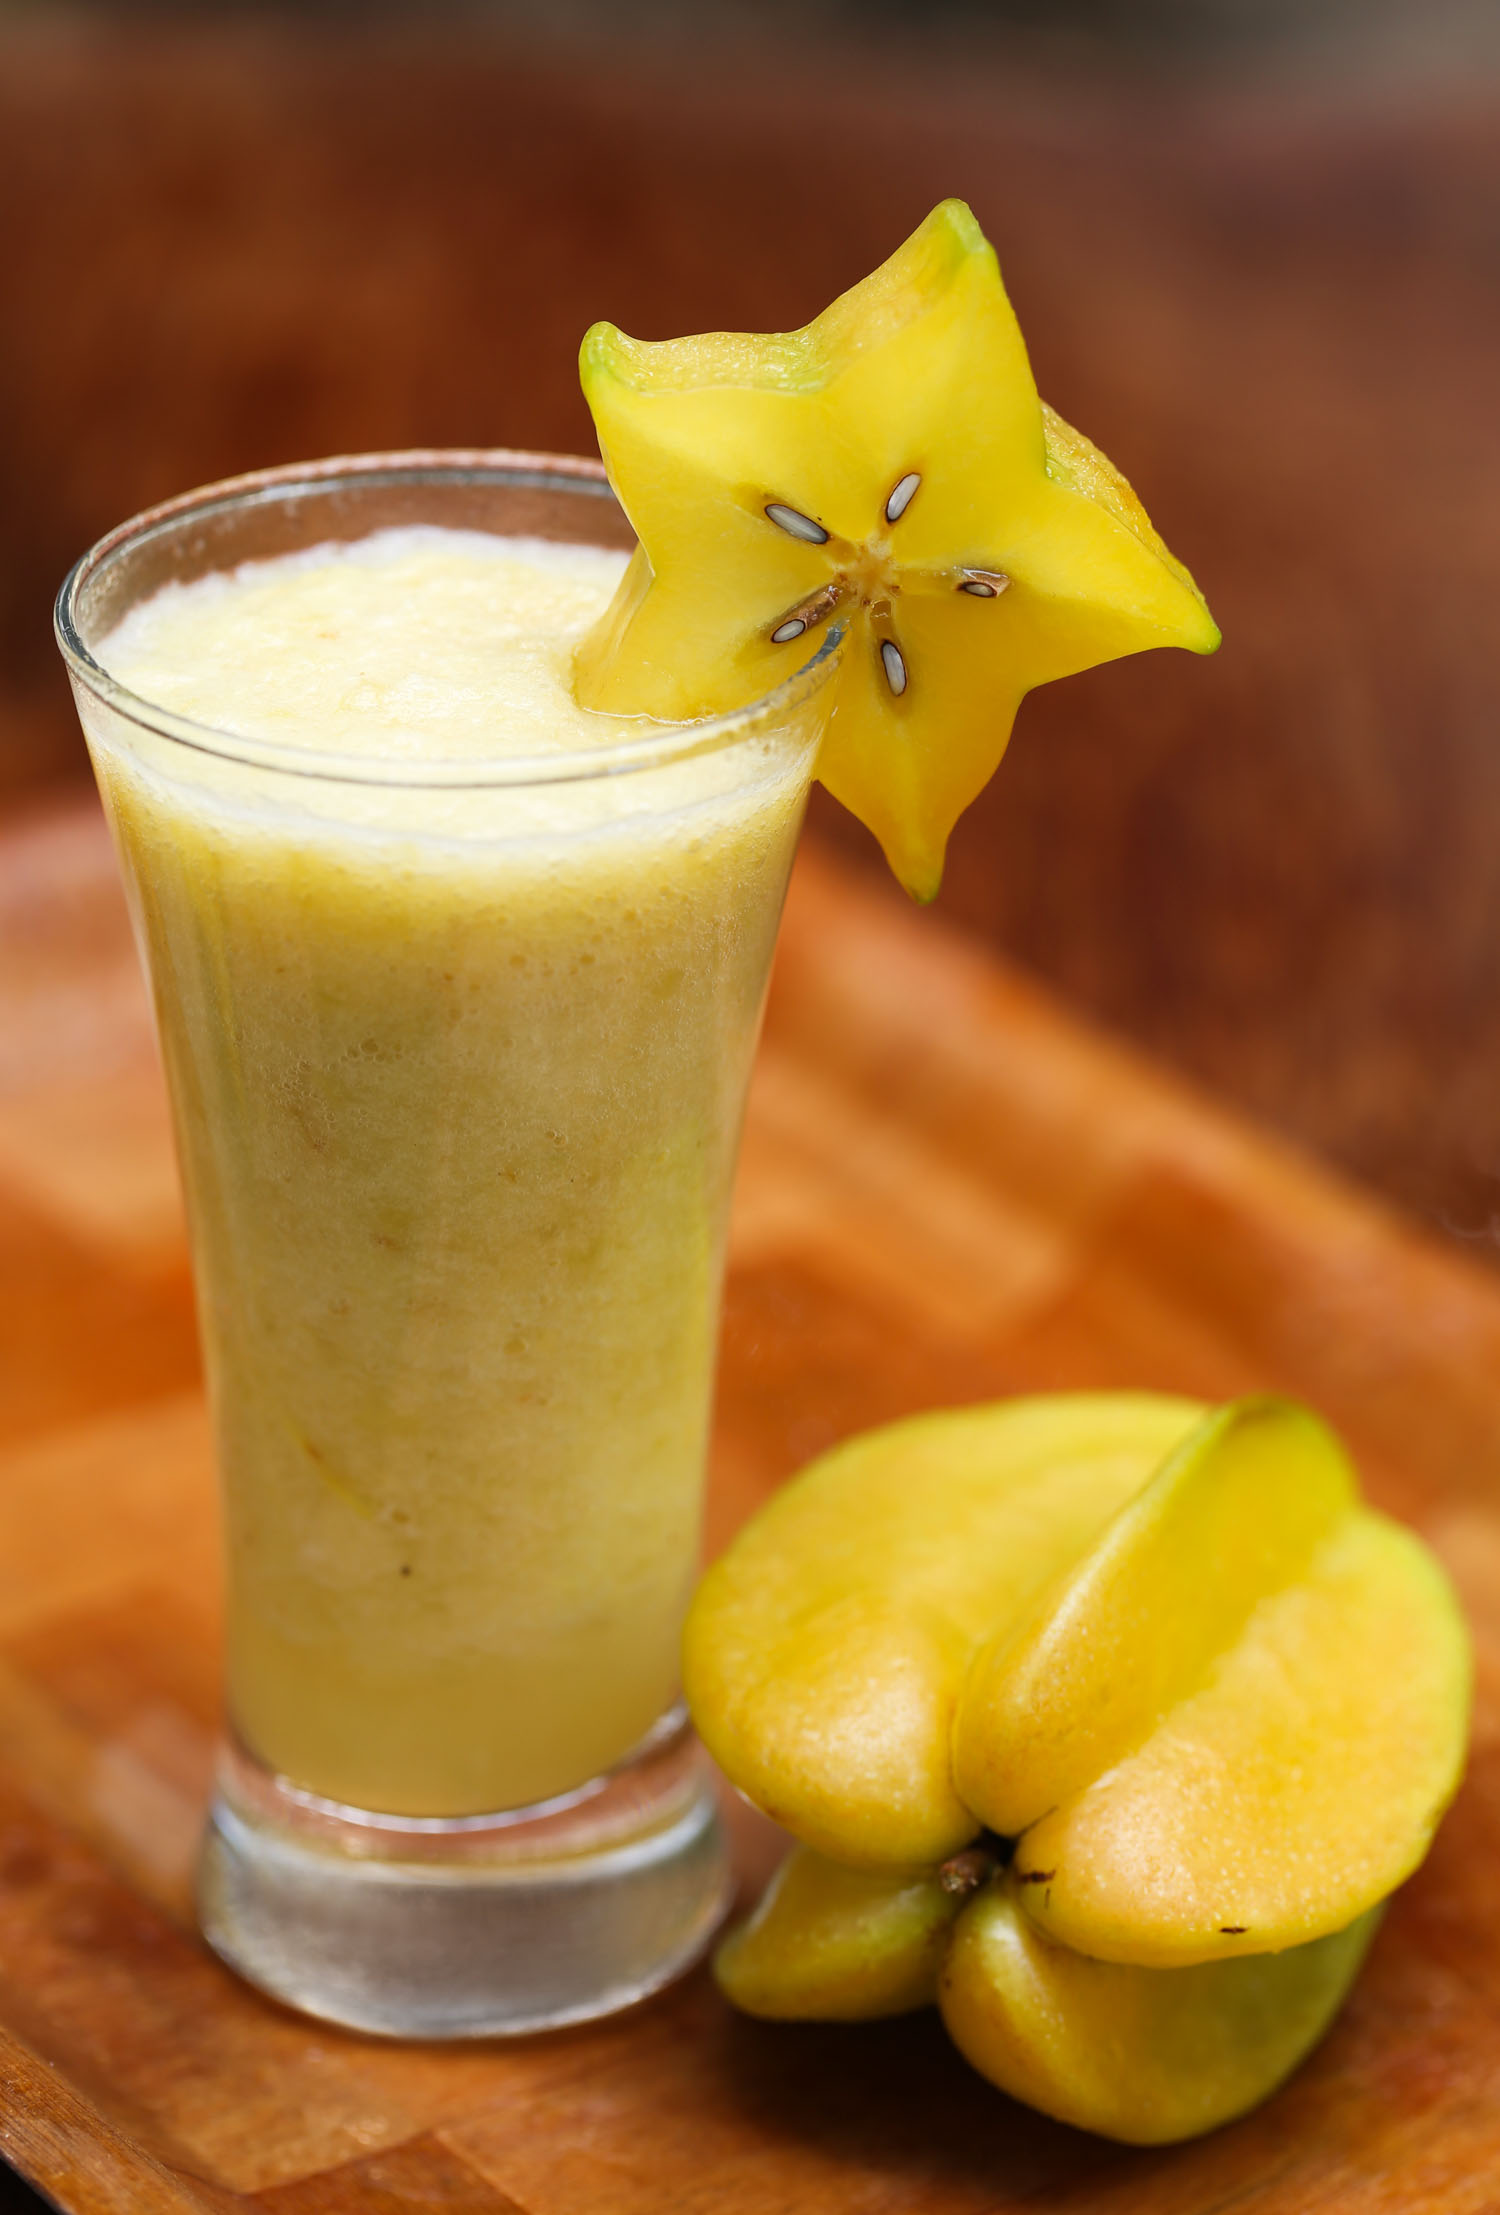 Kamranga also known as Carambola or starfruit juice in a glass with ripe fruit